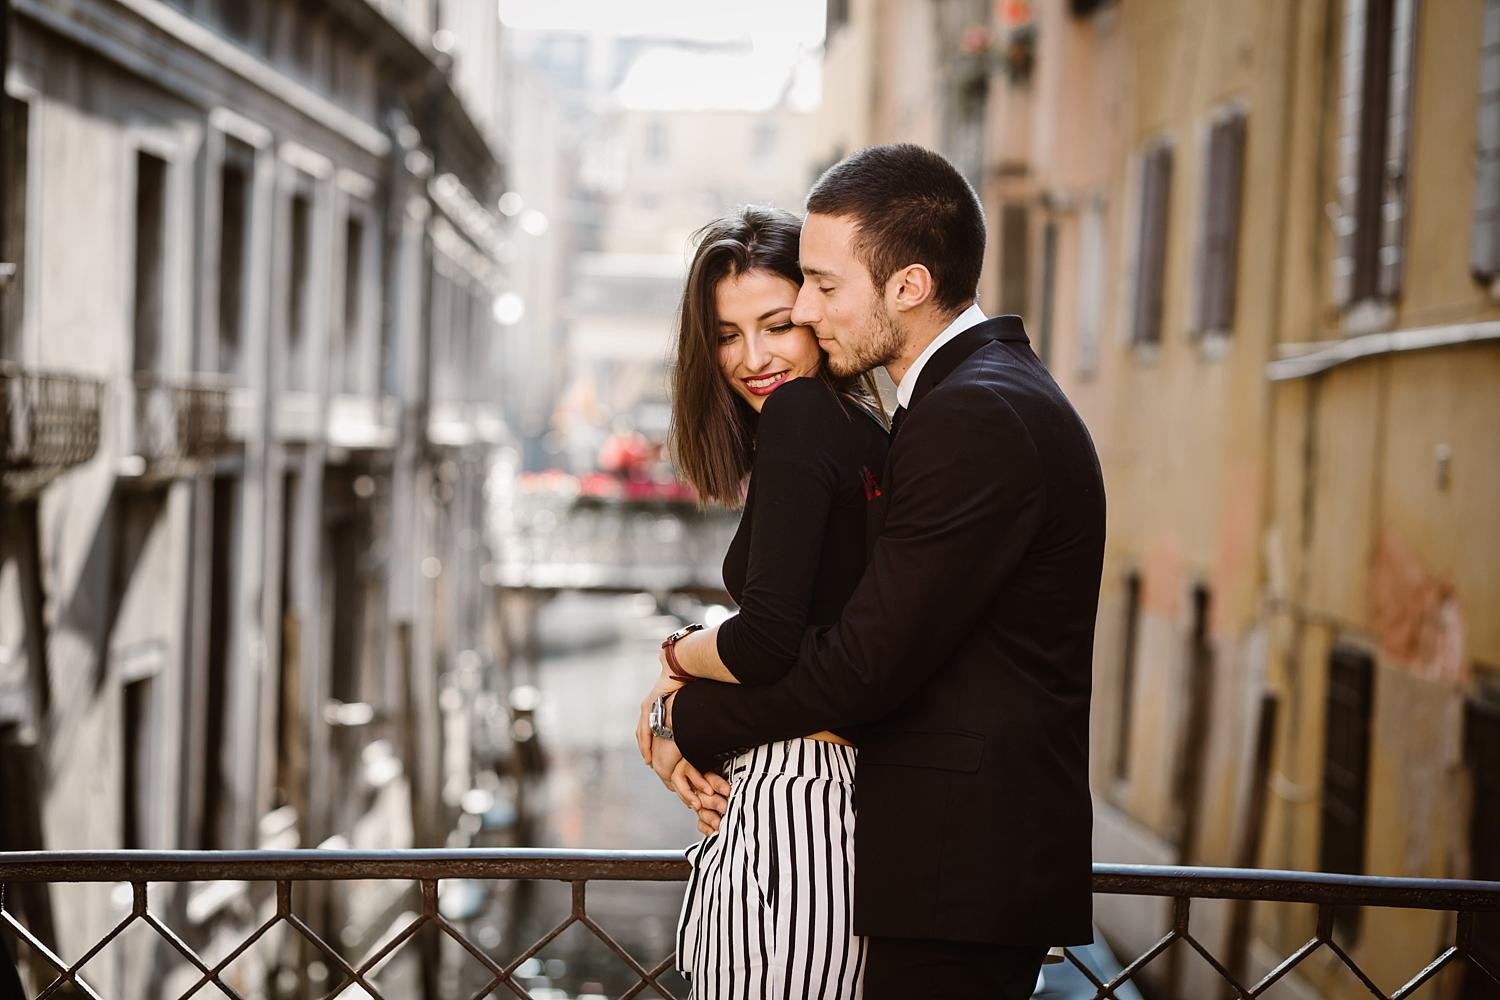 GL 03 - Giulia & Leonardo - An Intimate Shooting in Venice